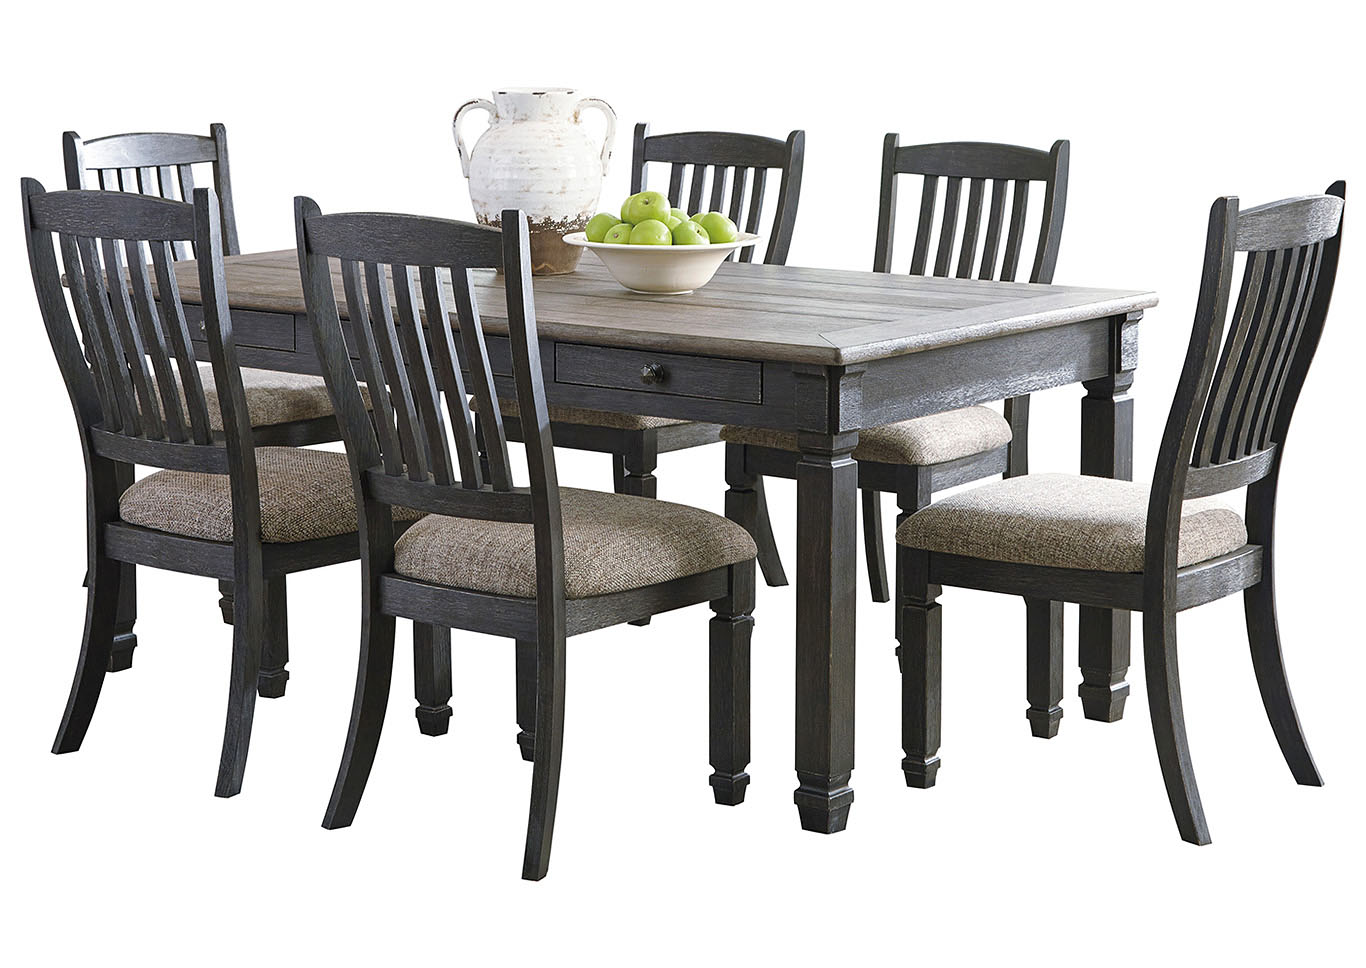 Tyler Creek Dining Table and 6 Chairs